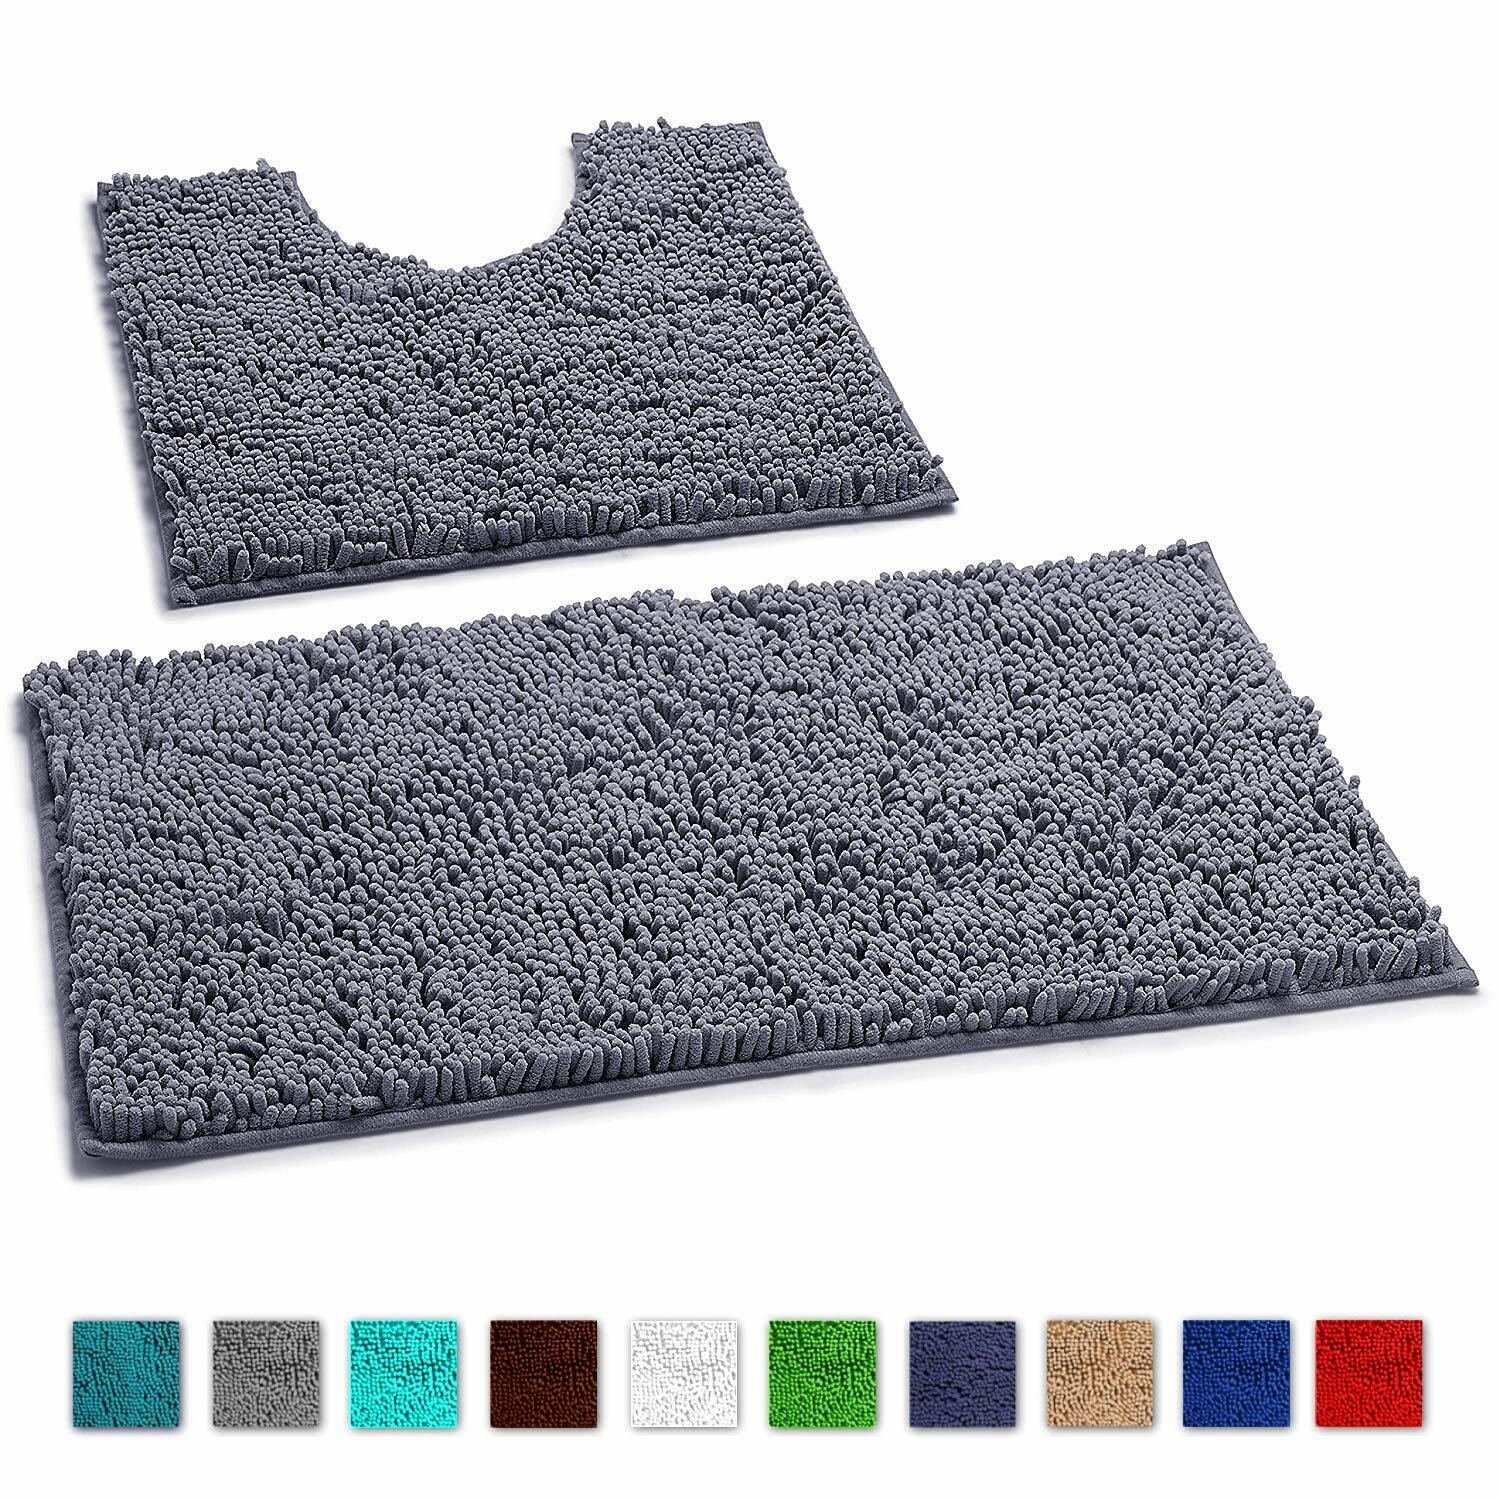 LuxUrux 2pc Bath mat-Extra-Soft Plush Non-Slip Bath Shower B